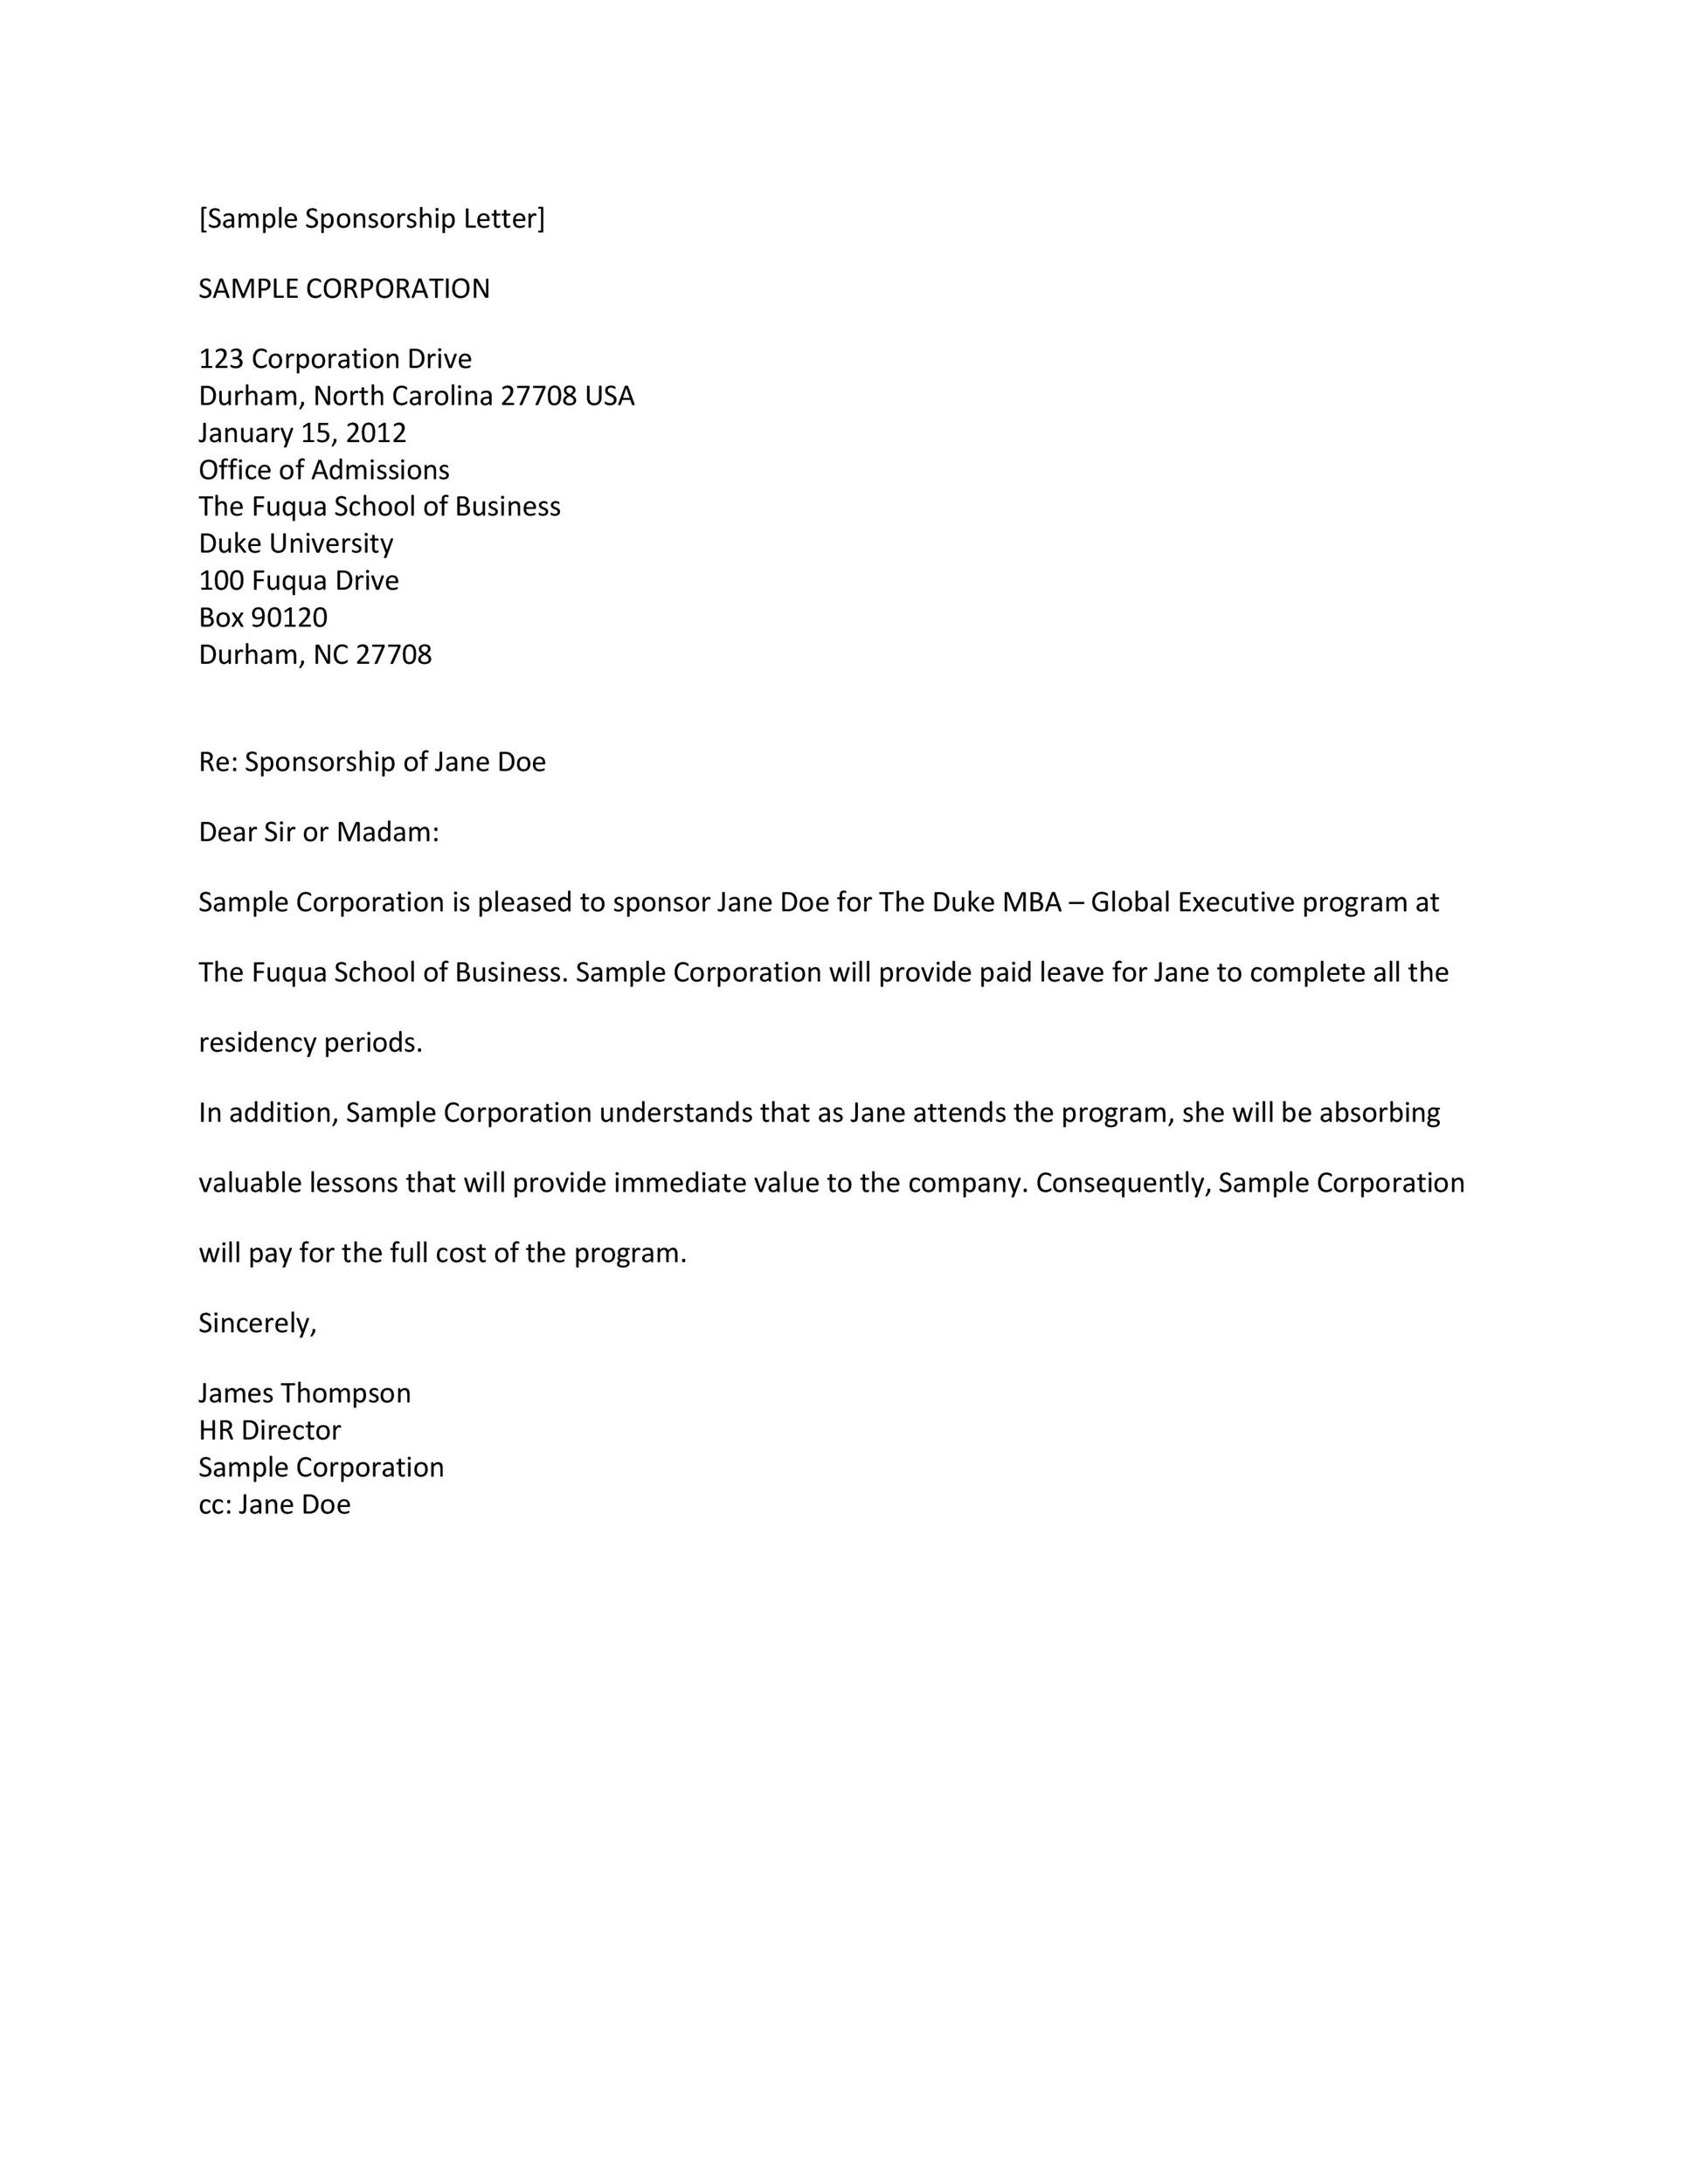 40 Sponsorship Letter Sponsorship Proposal Templates – Format for Sponsorship Letter